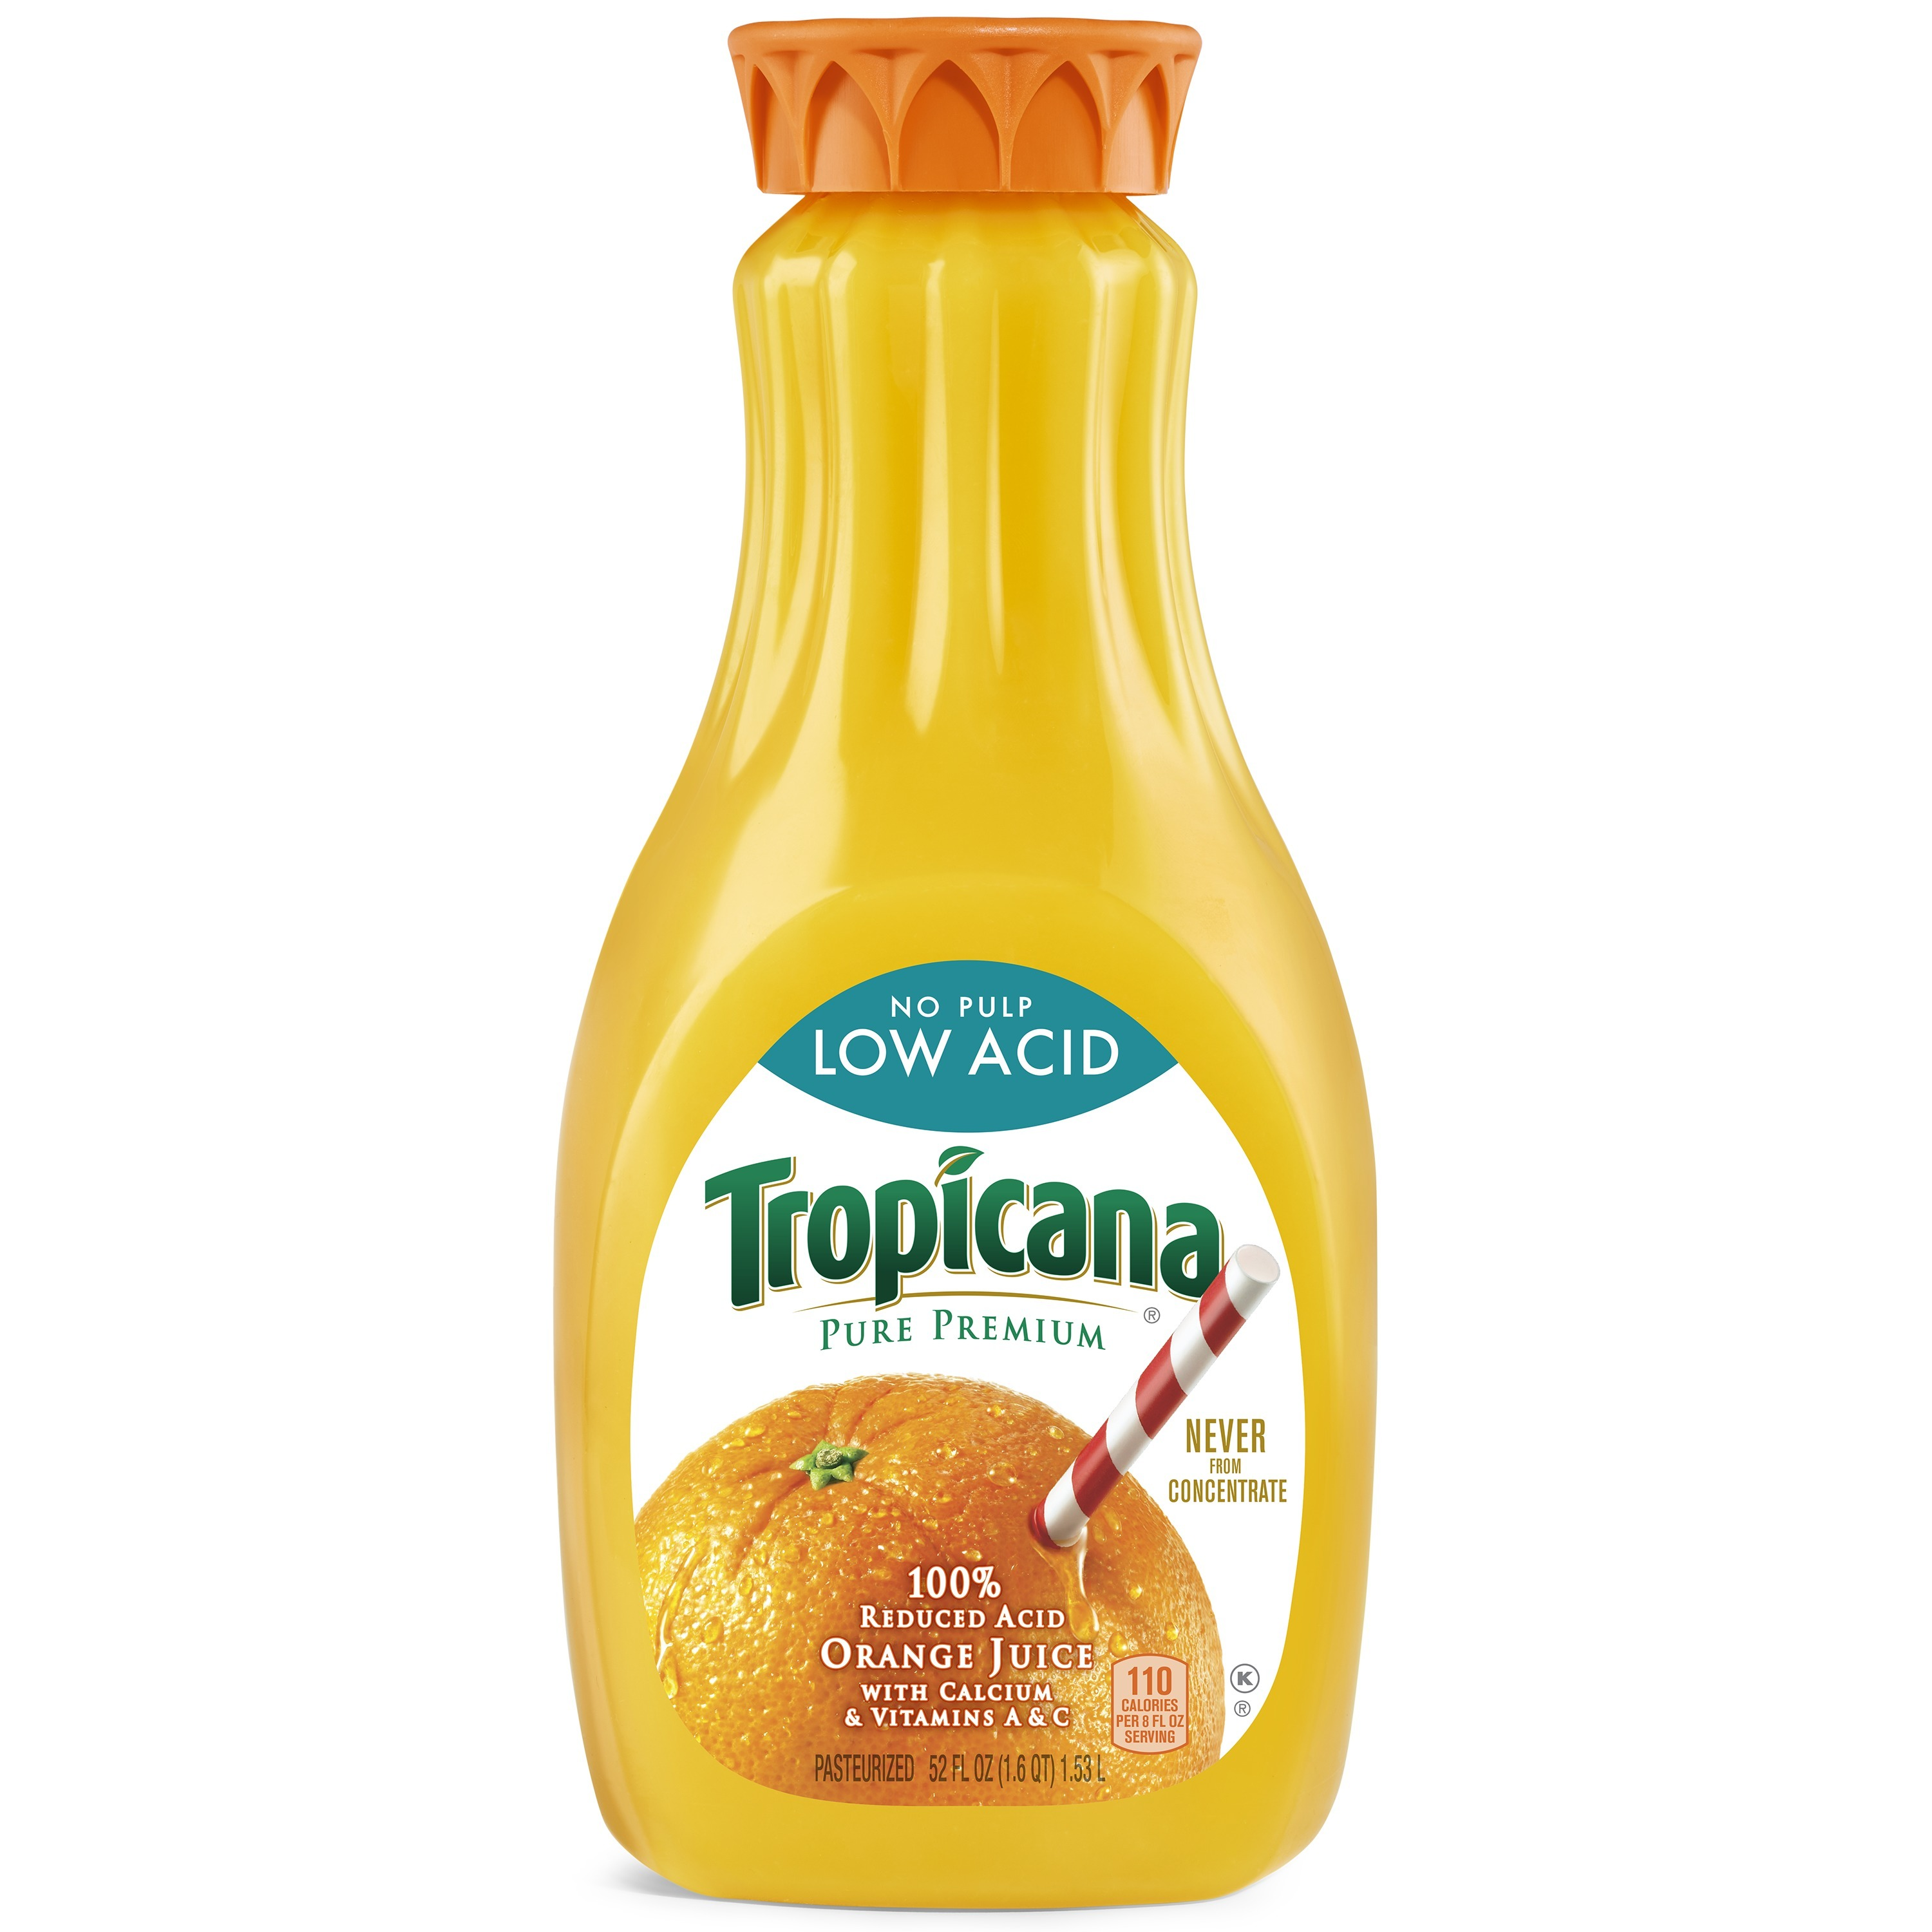 Tropicana No Pulp 100% Reduced Asic Orange Juice, 52 Fl. Oz.